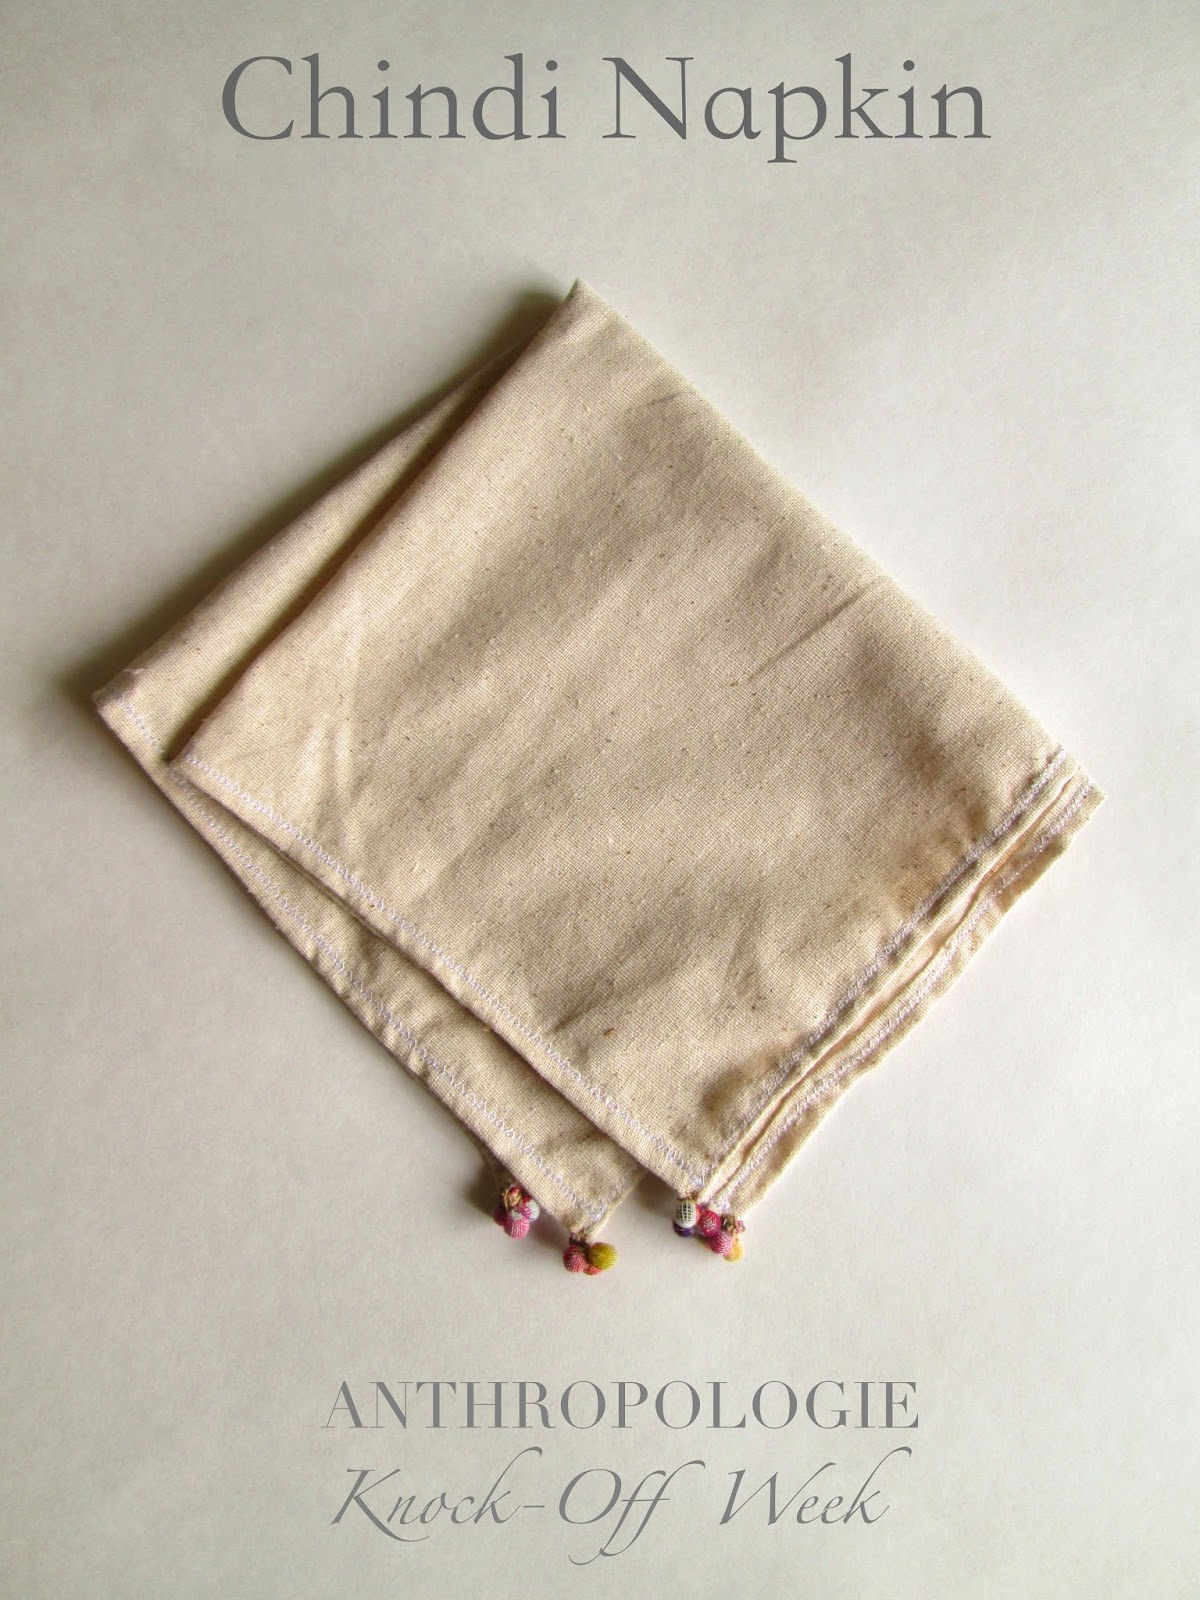 Anthropologie Chindi Napkin DIY